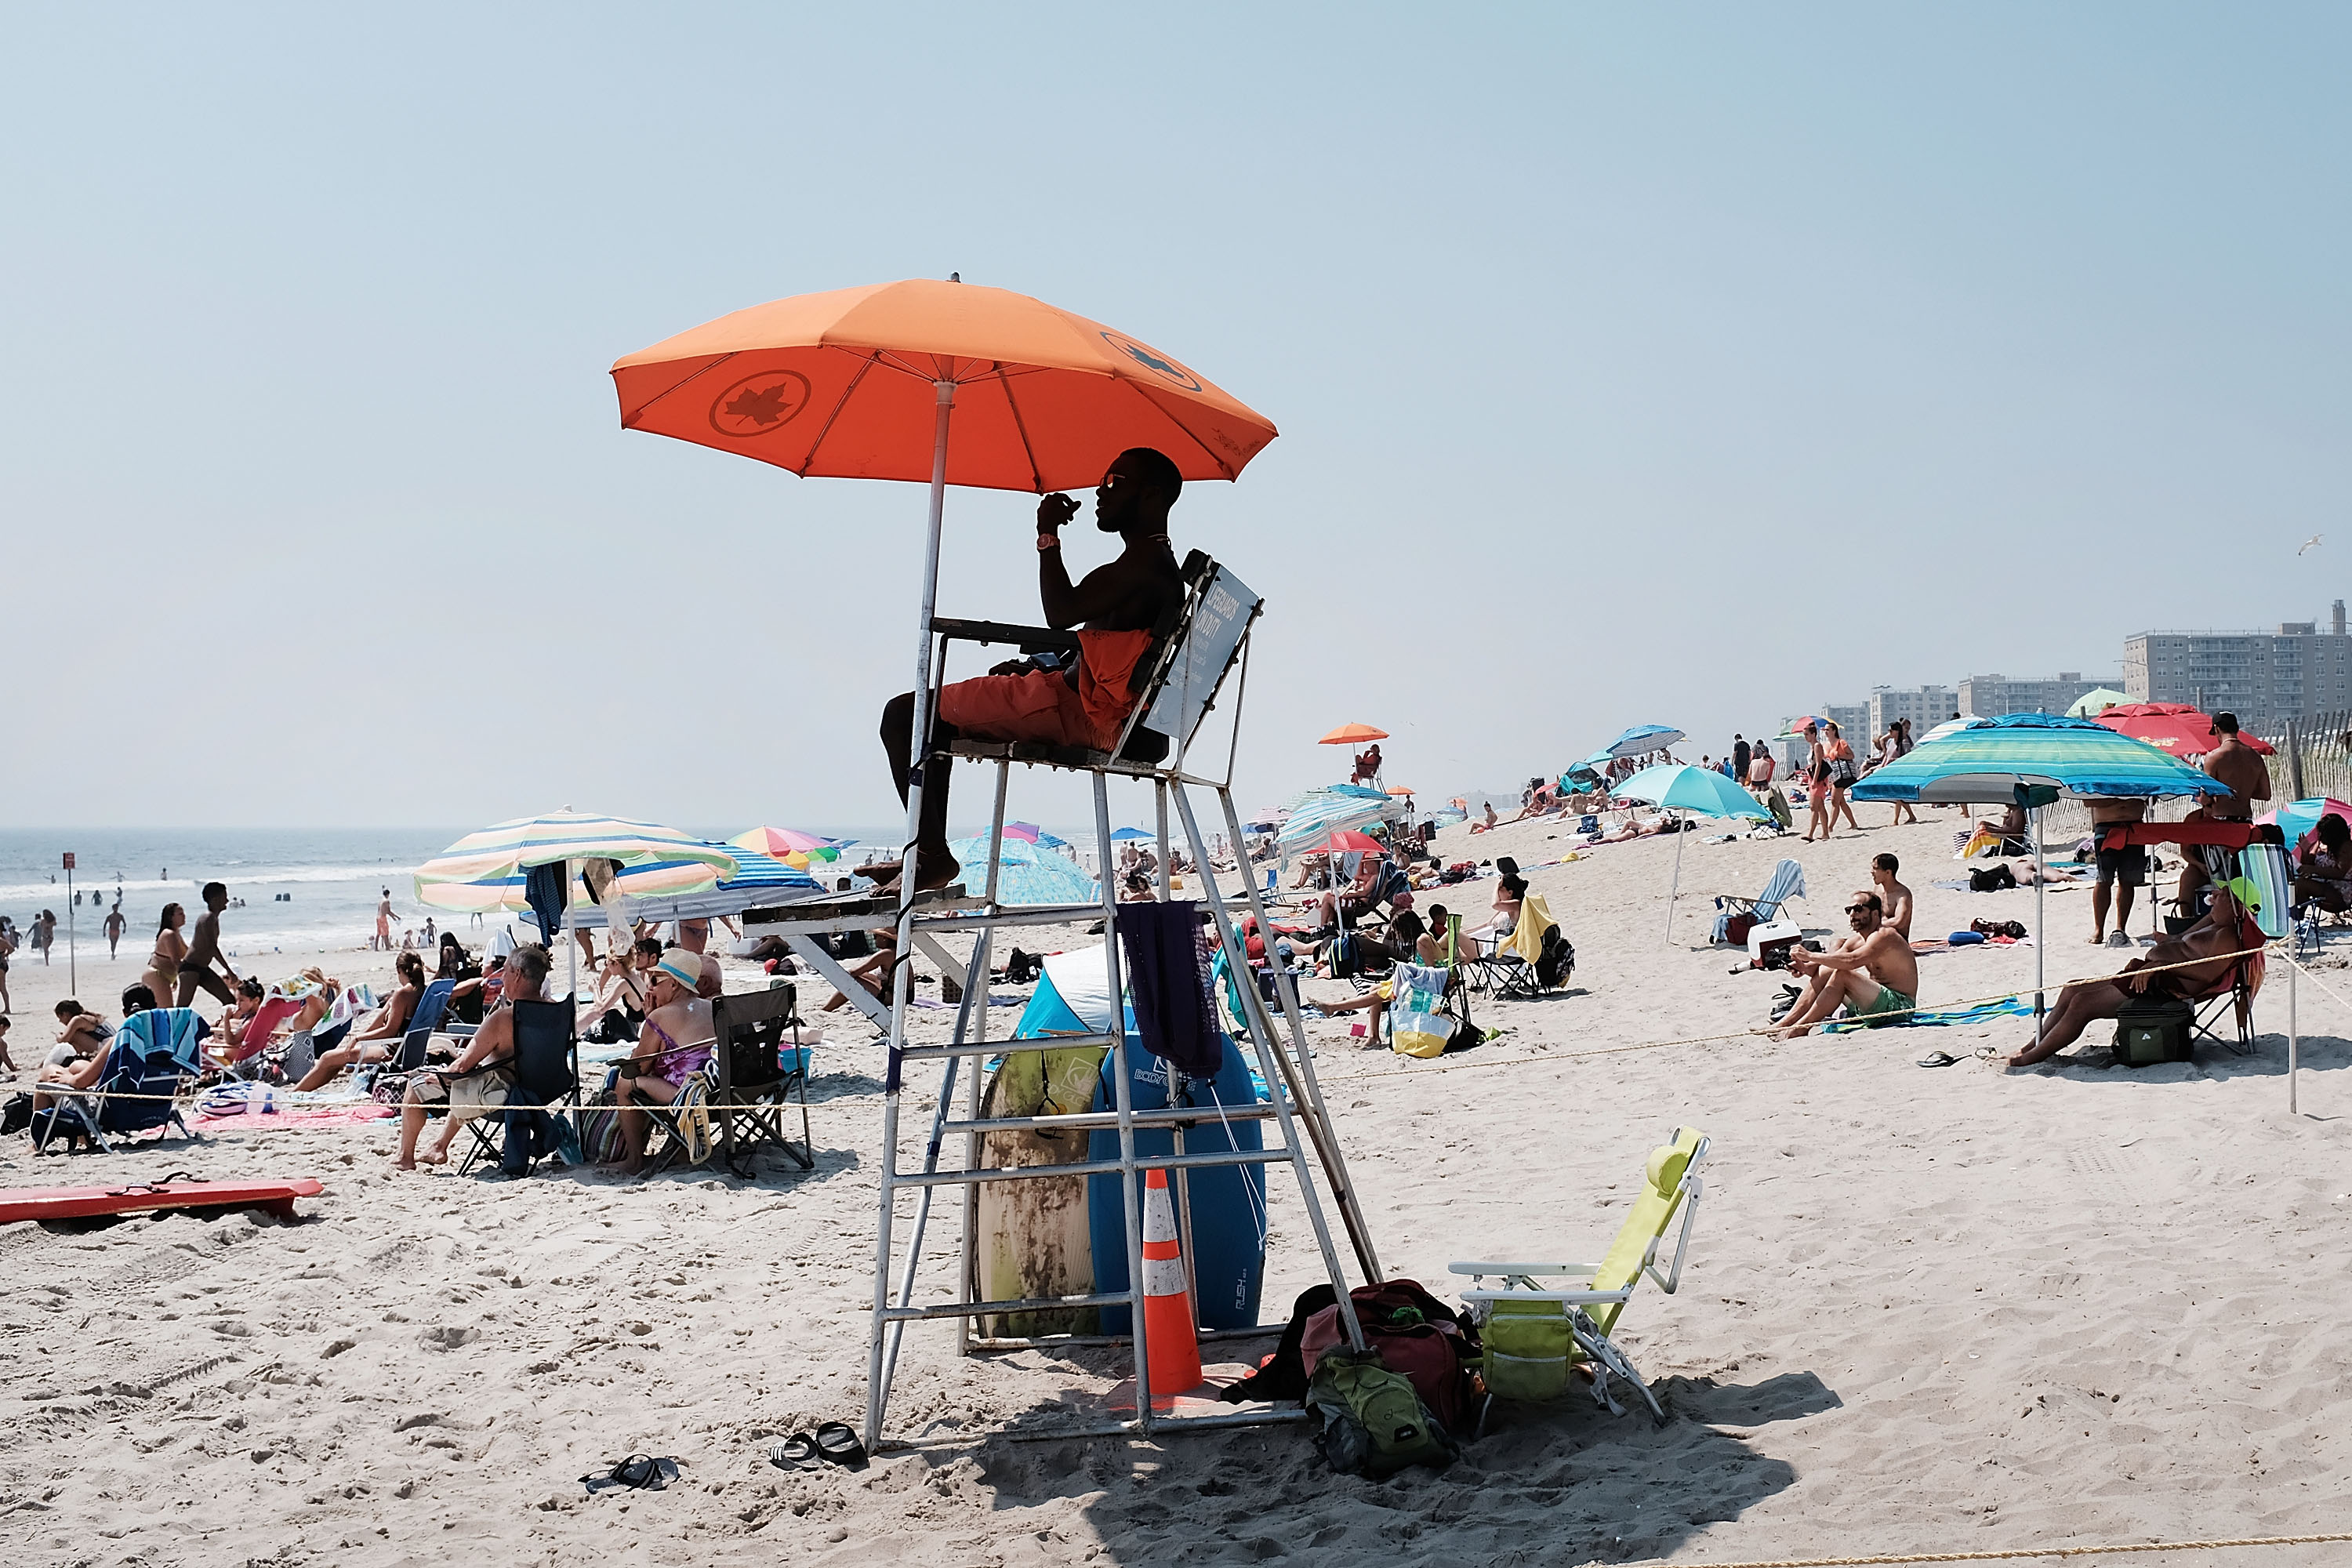 A lifeguard sits in an elevated chair with an orange umbrella on a crowded beach.